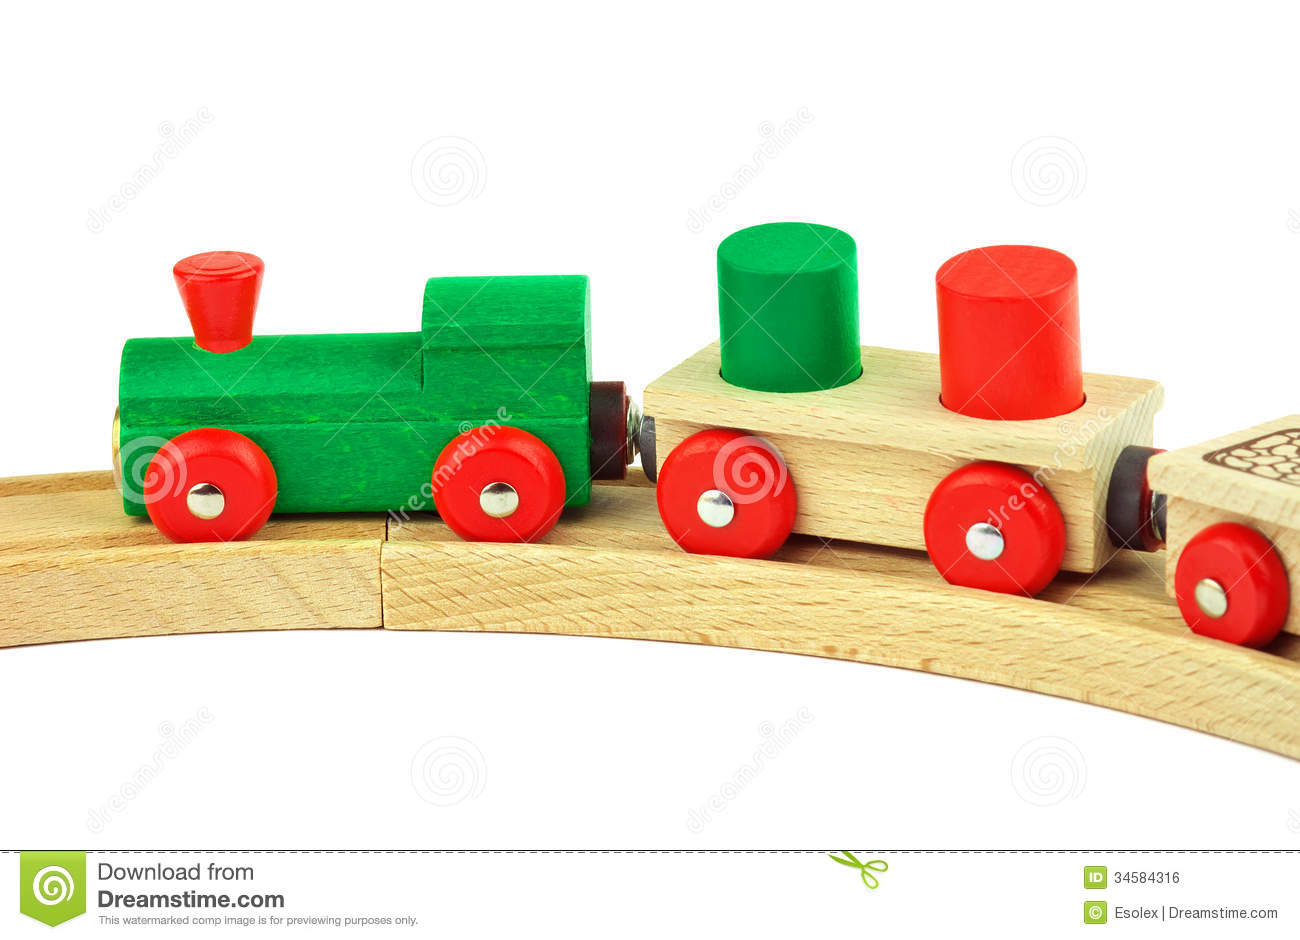 Kaepa: Wooden toy train plans free